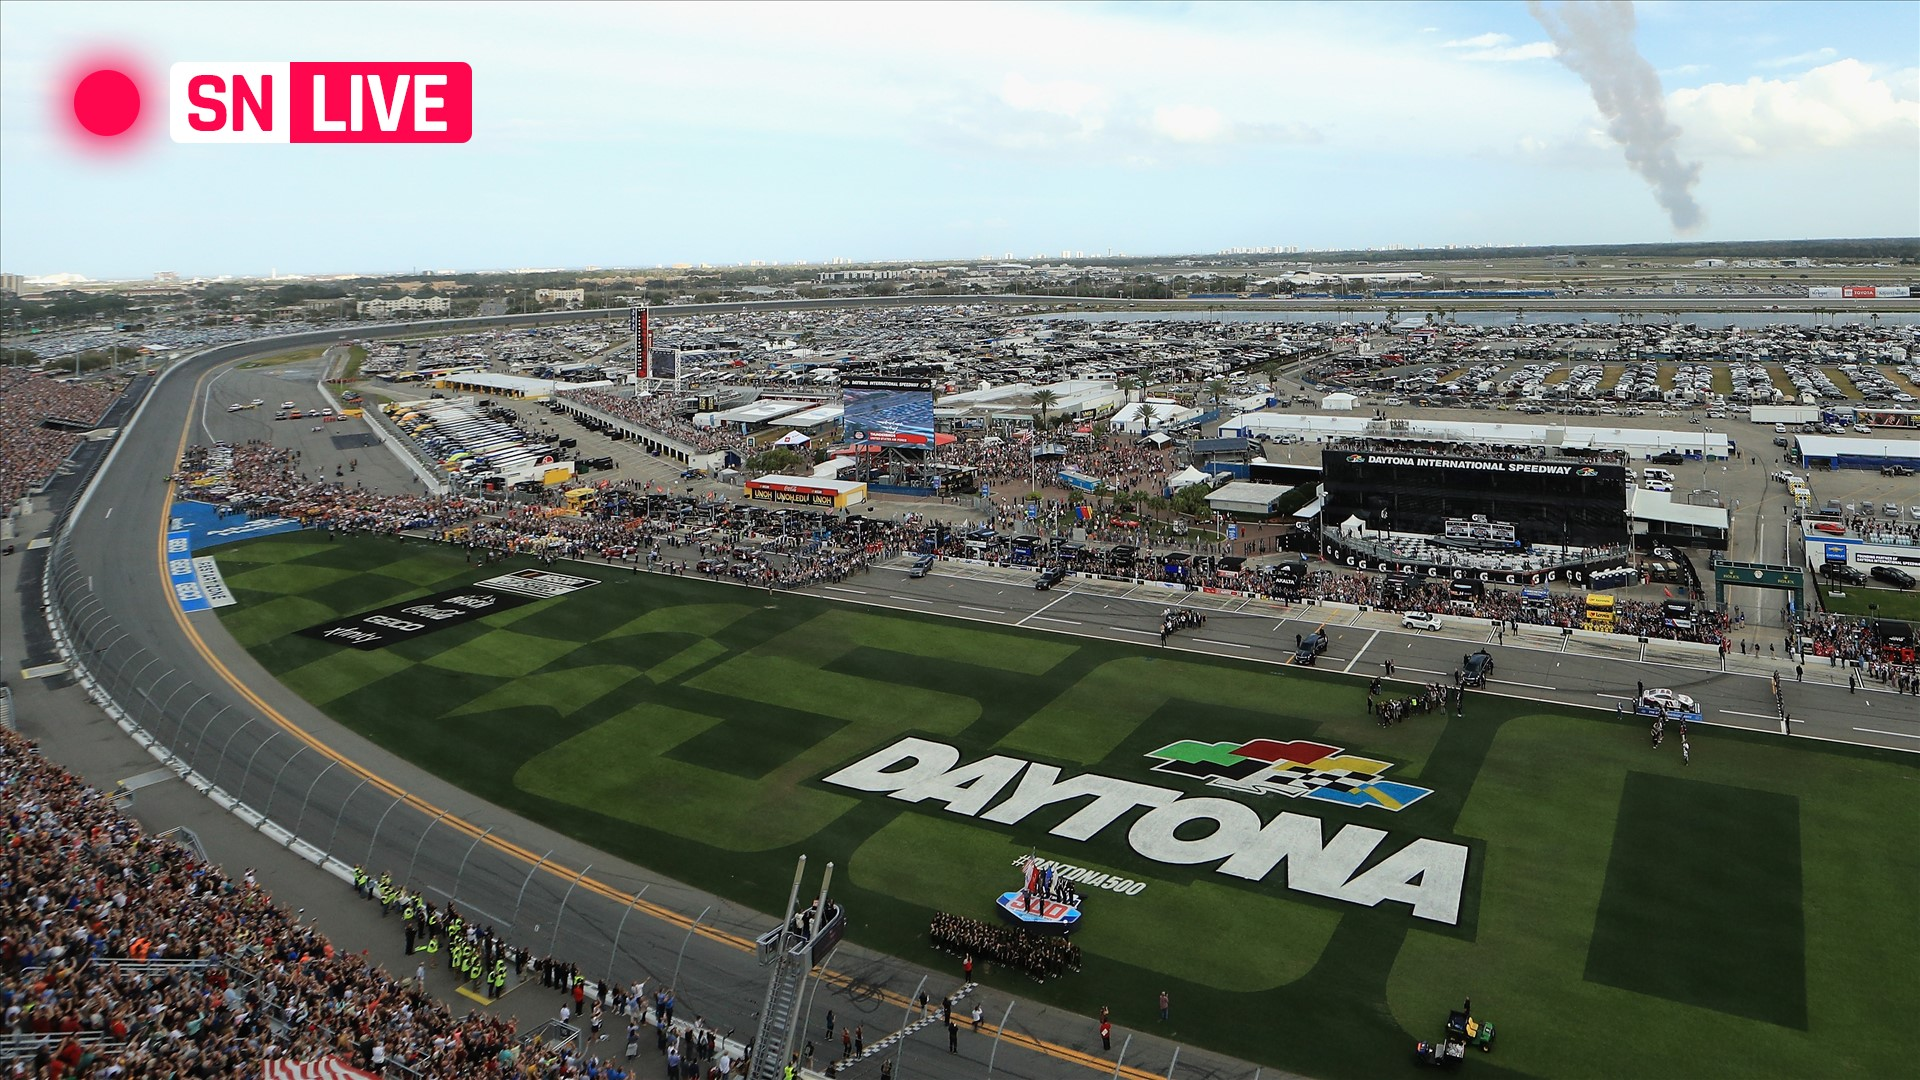 Daytona 500 live updates, outcomes, highlights from NASCAR's 2020 season-opening race